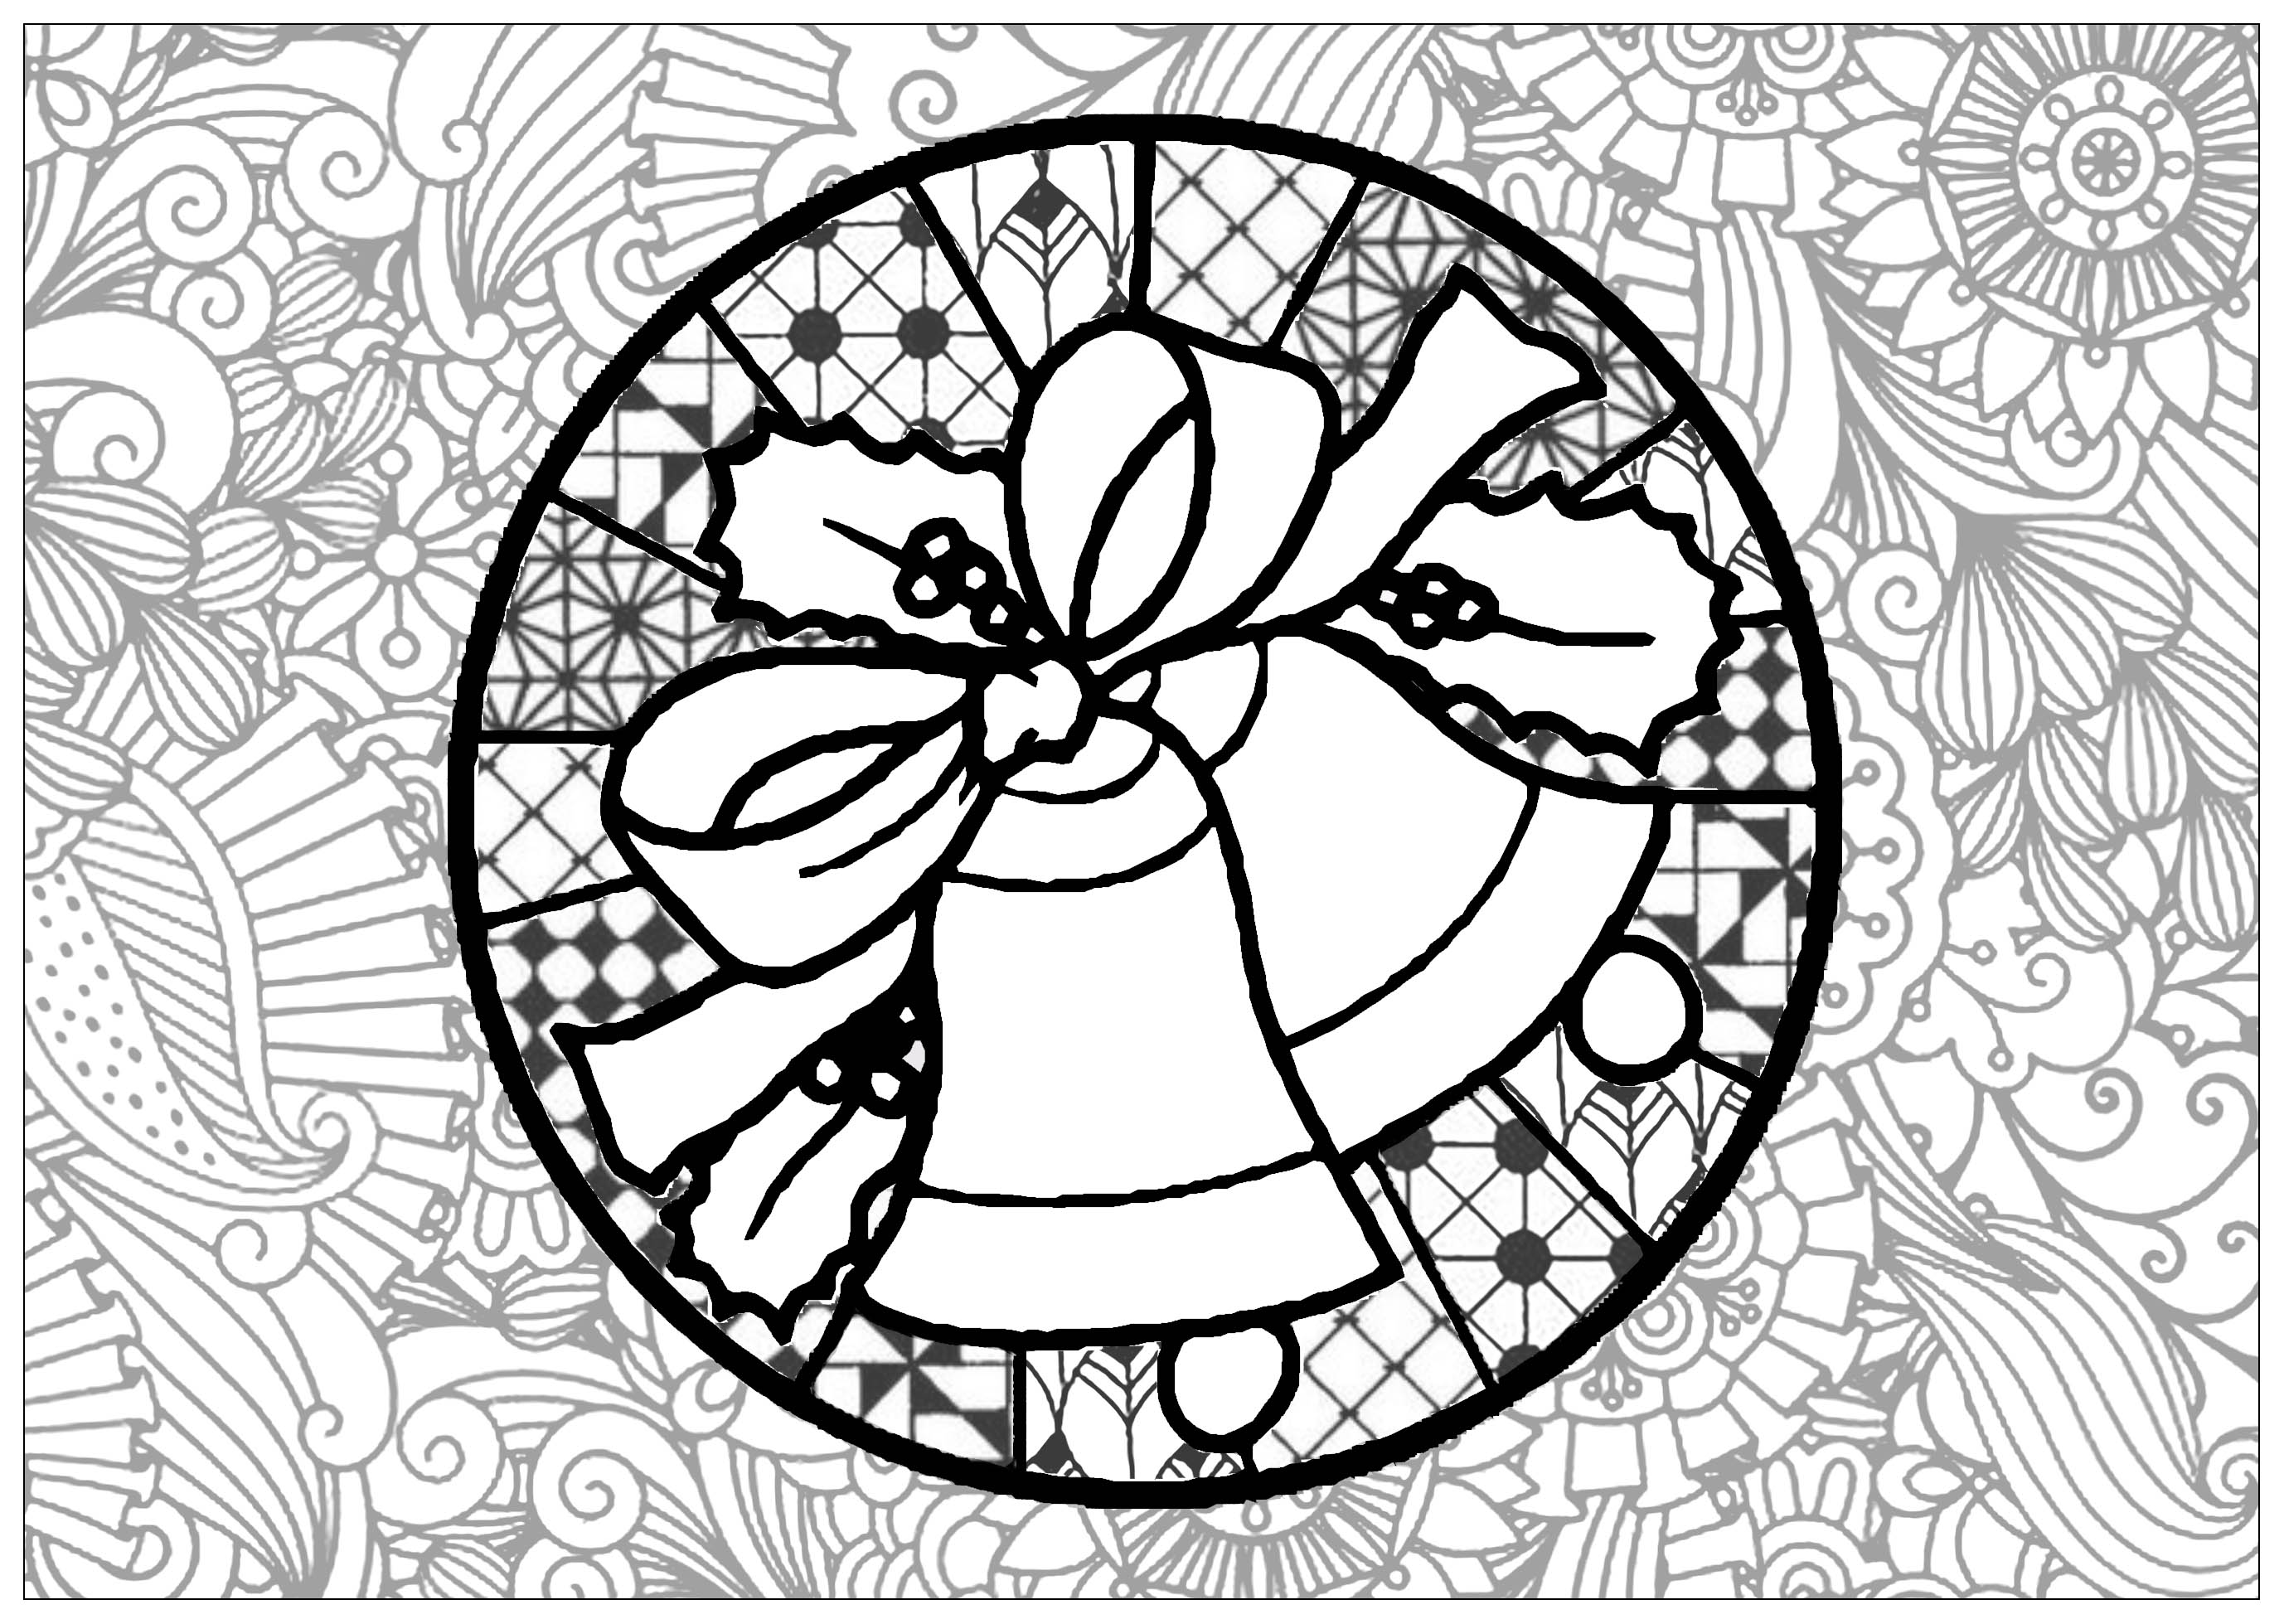 Very Complex Coloring Page With The Christmas Bells And Many Different Patterns